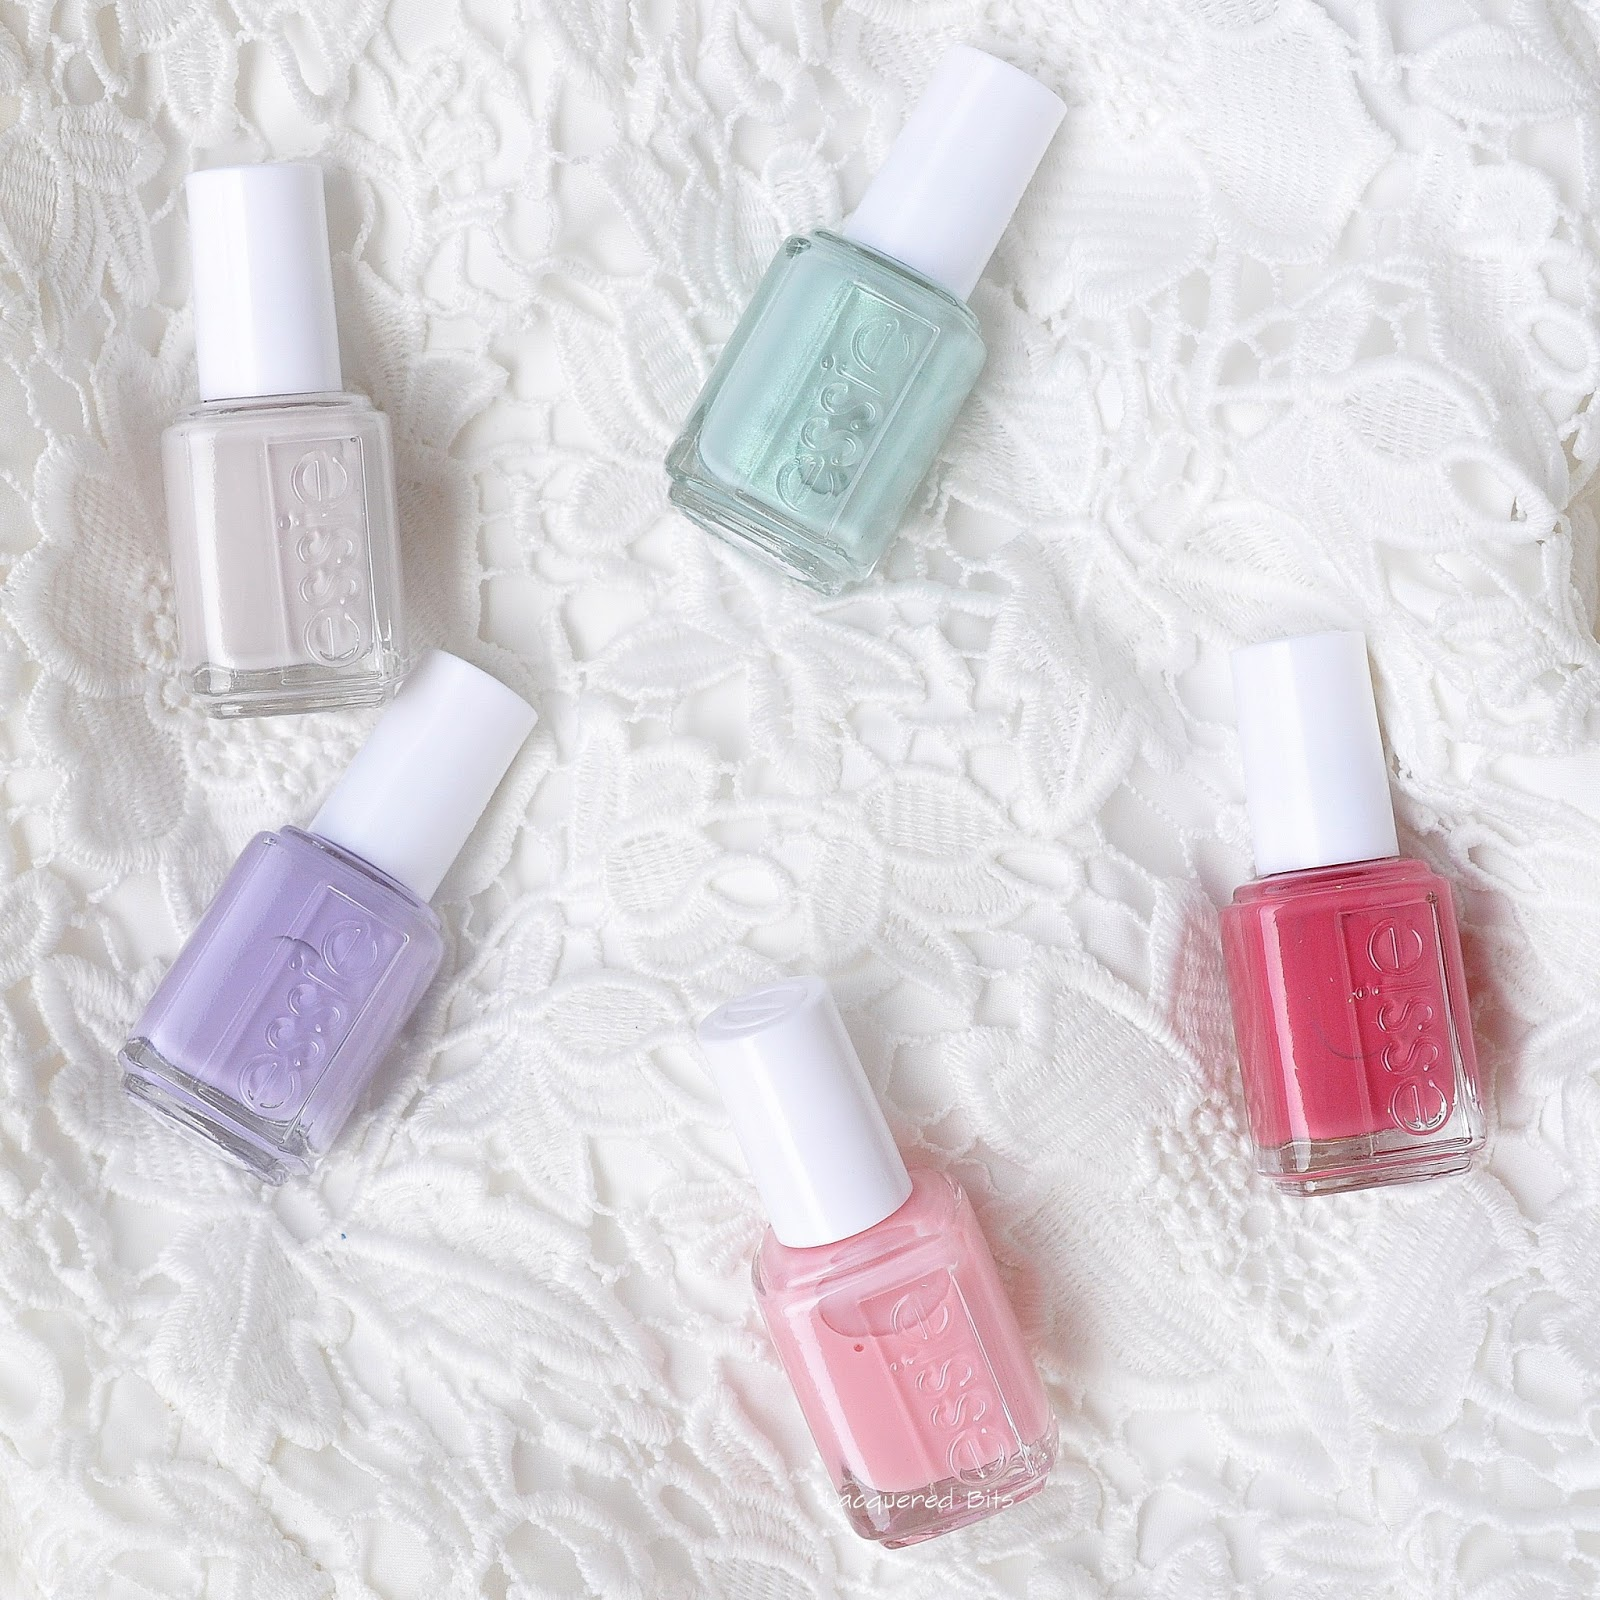 Essie Bridal 2016 - Mrs Always-Right Collection - Swatches & Review - Lacquered Bits